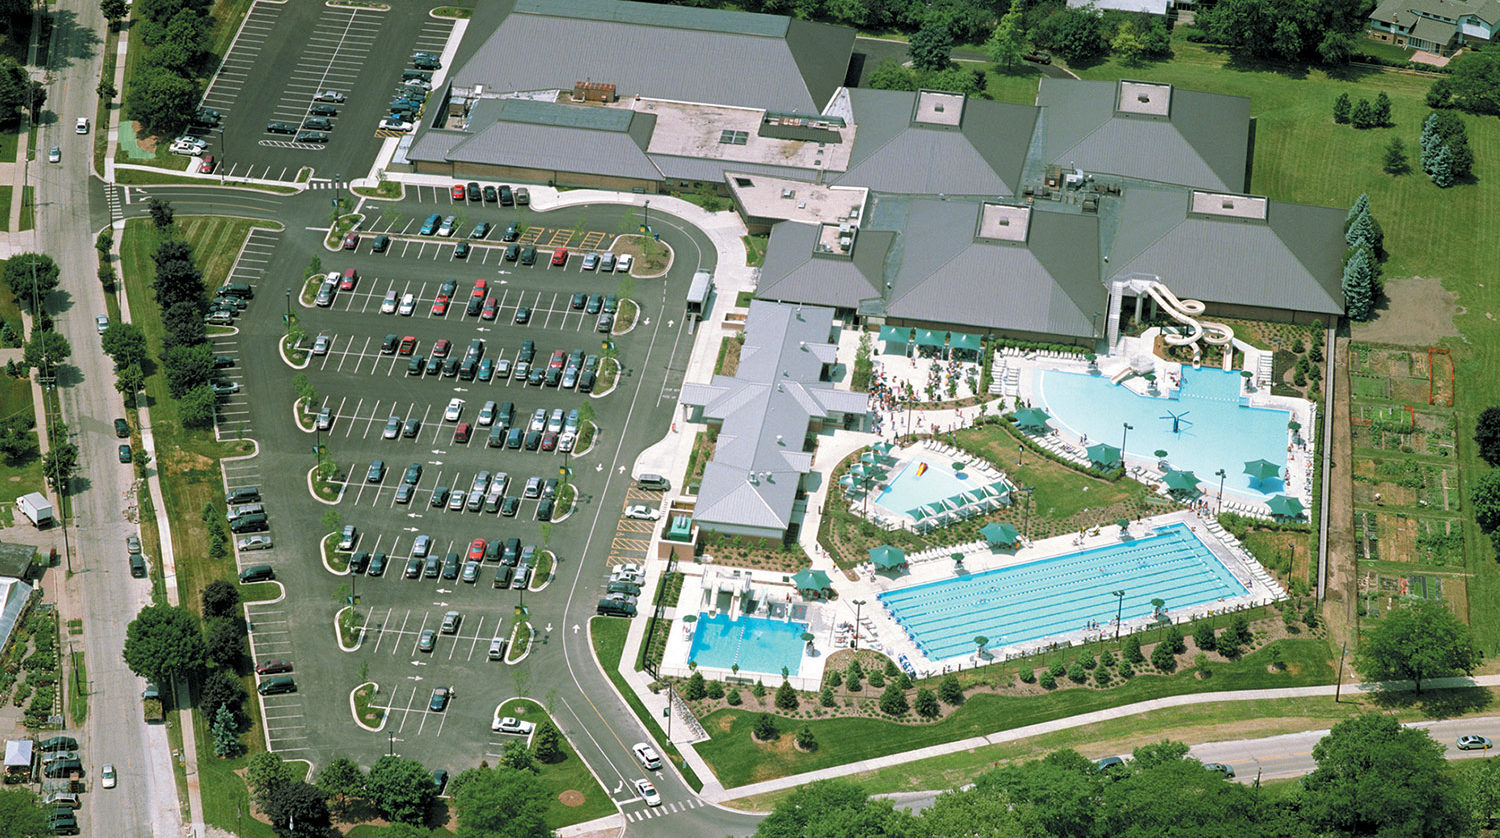 Wilmette Park District Family Aquatic Center aerial